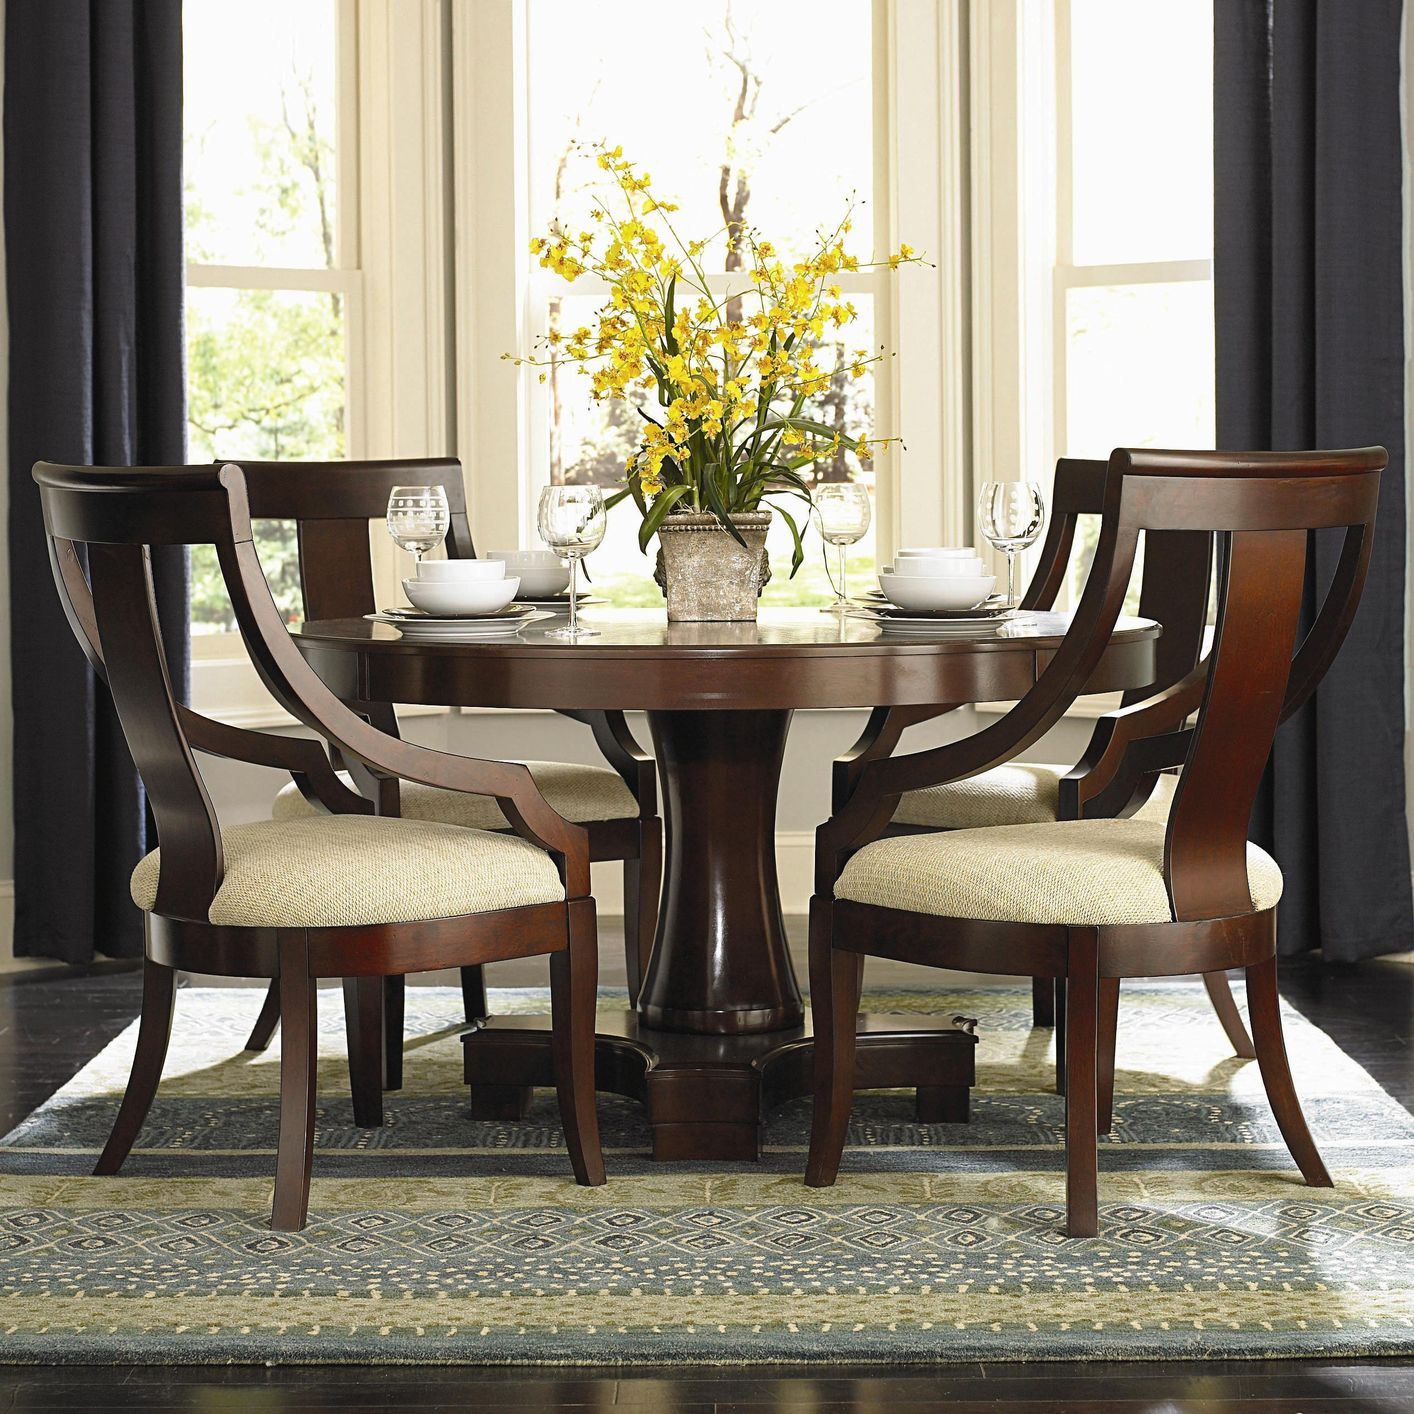 Cherrywood Dining Table: Cresta Cherry Wood Dining Table Set